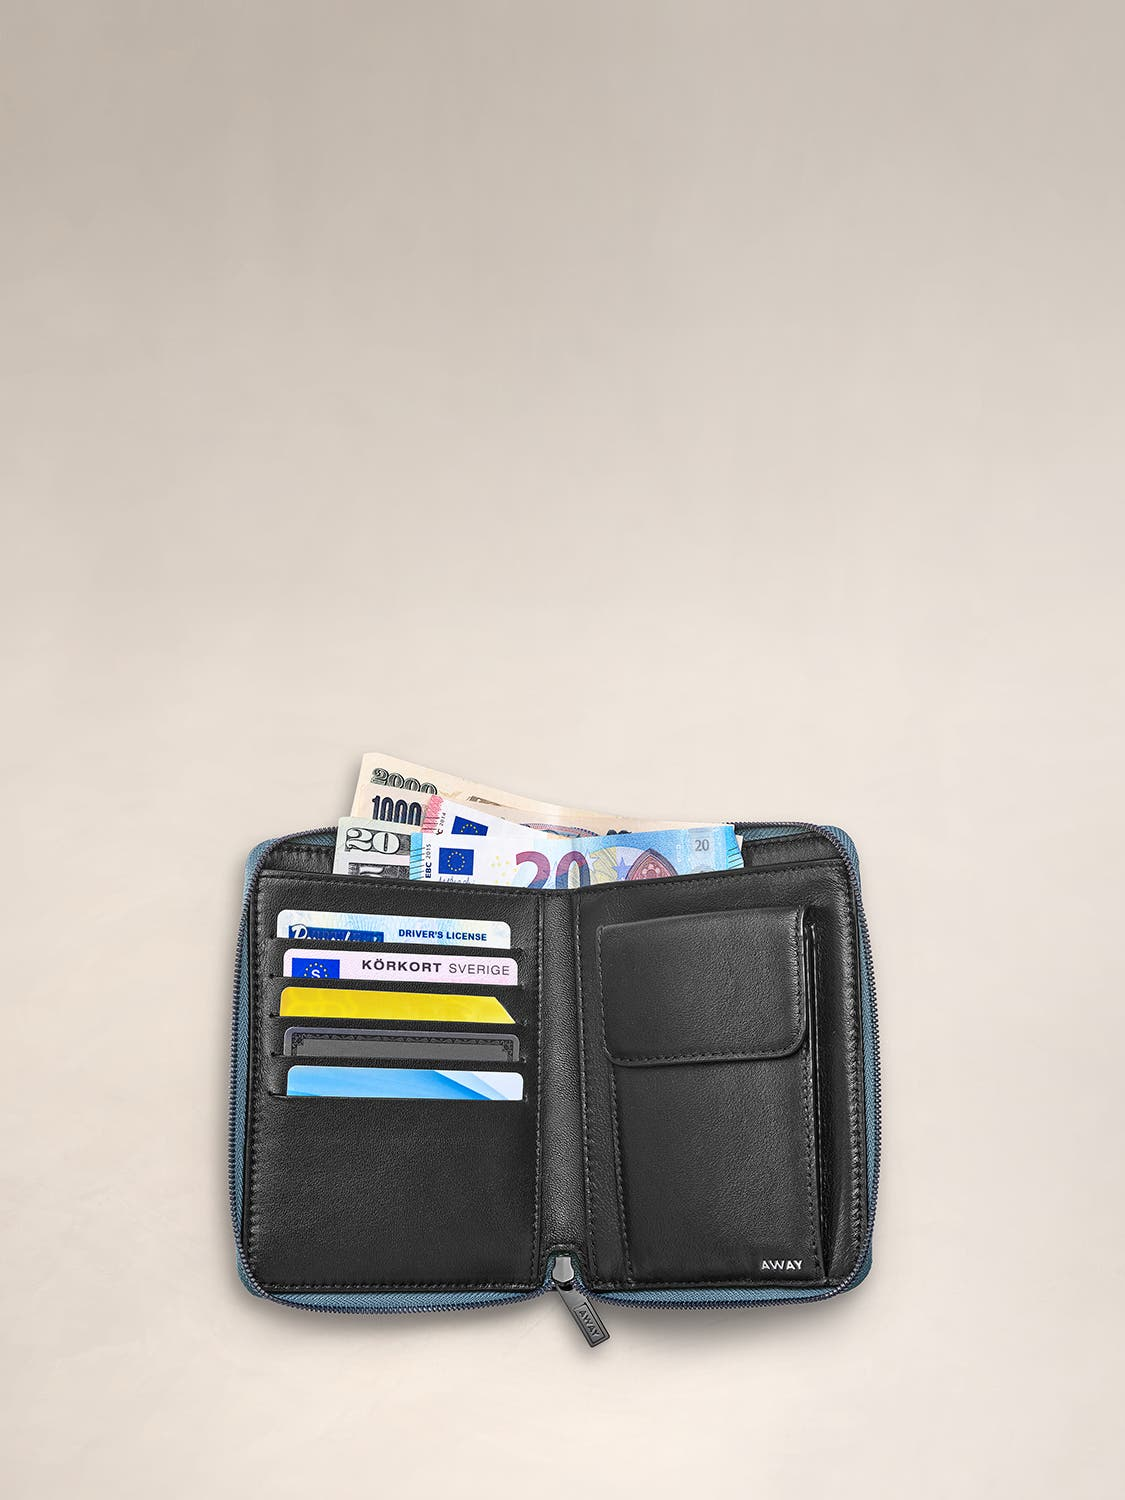 Inside view of a zip travel wallet with cards and cash organized in its pockets.